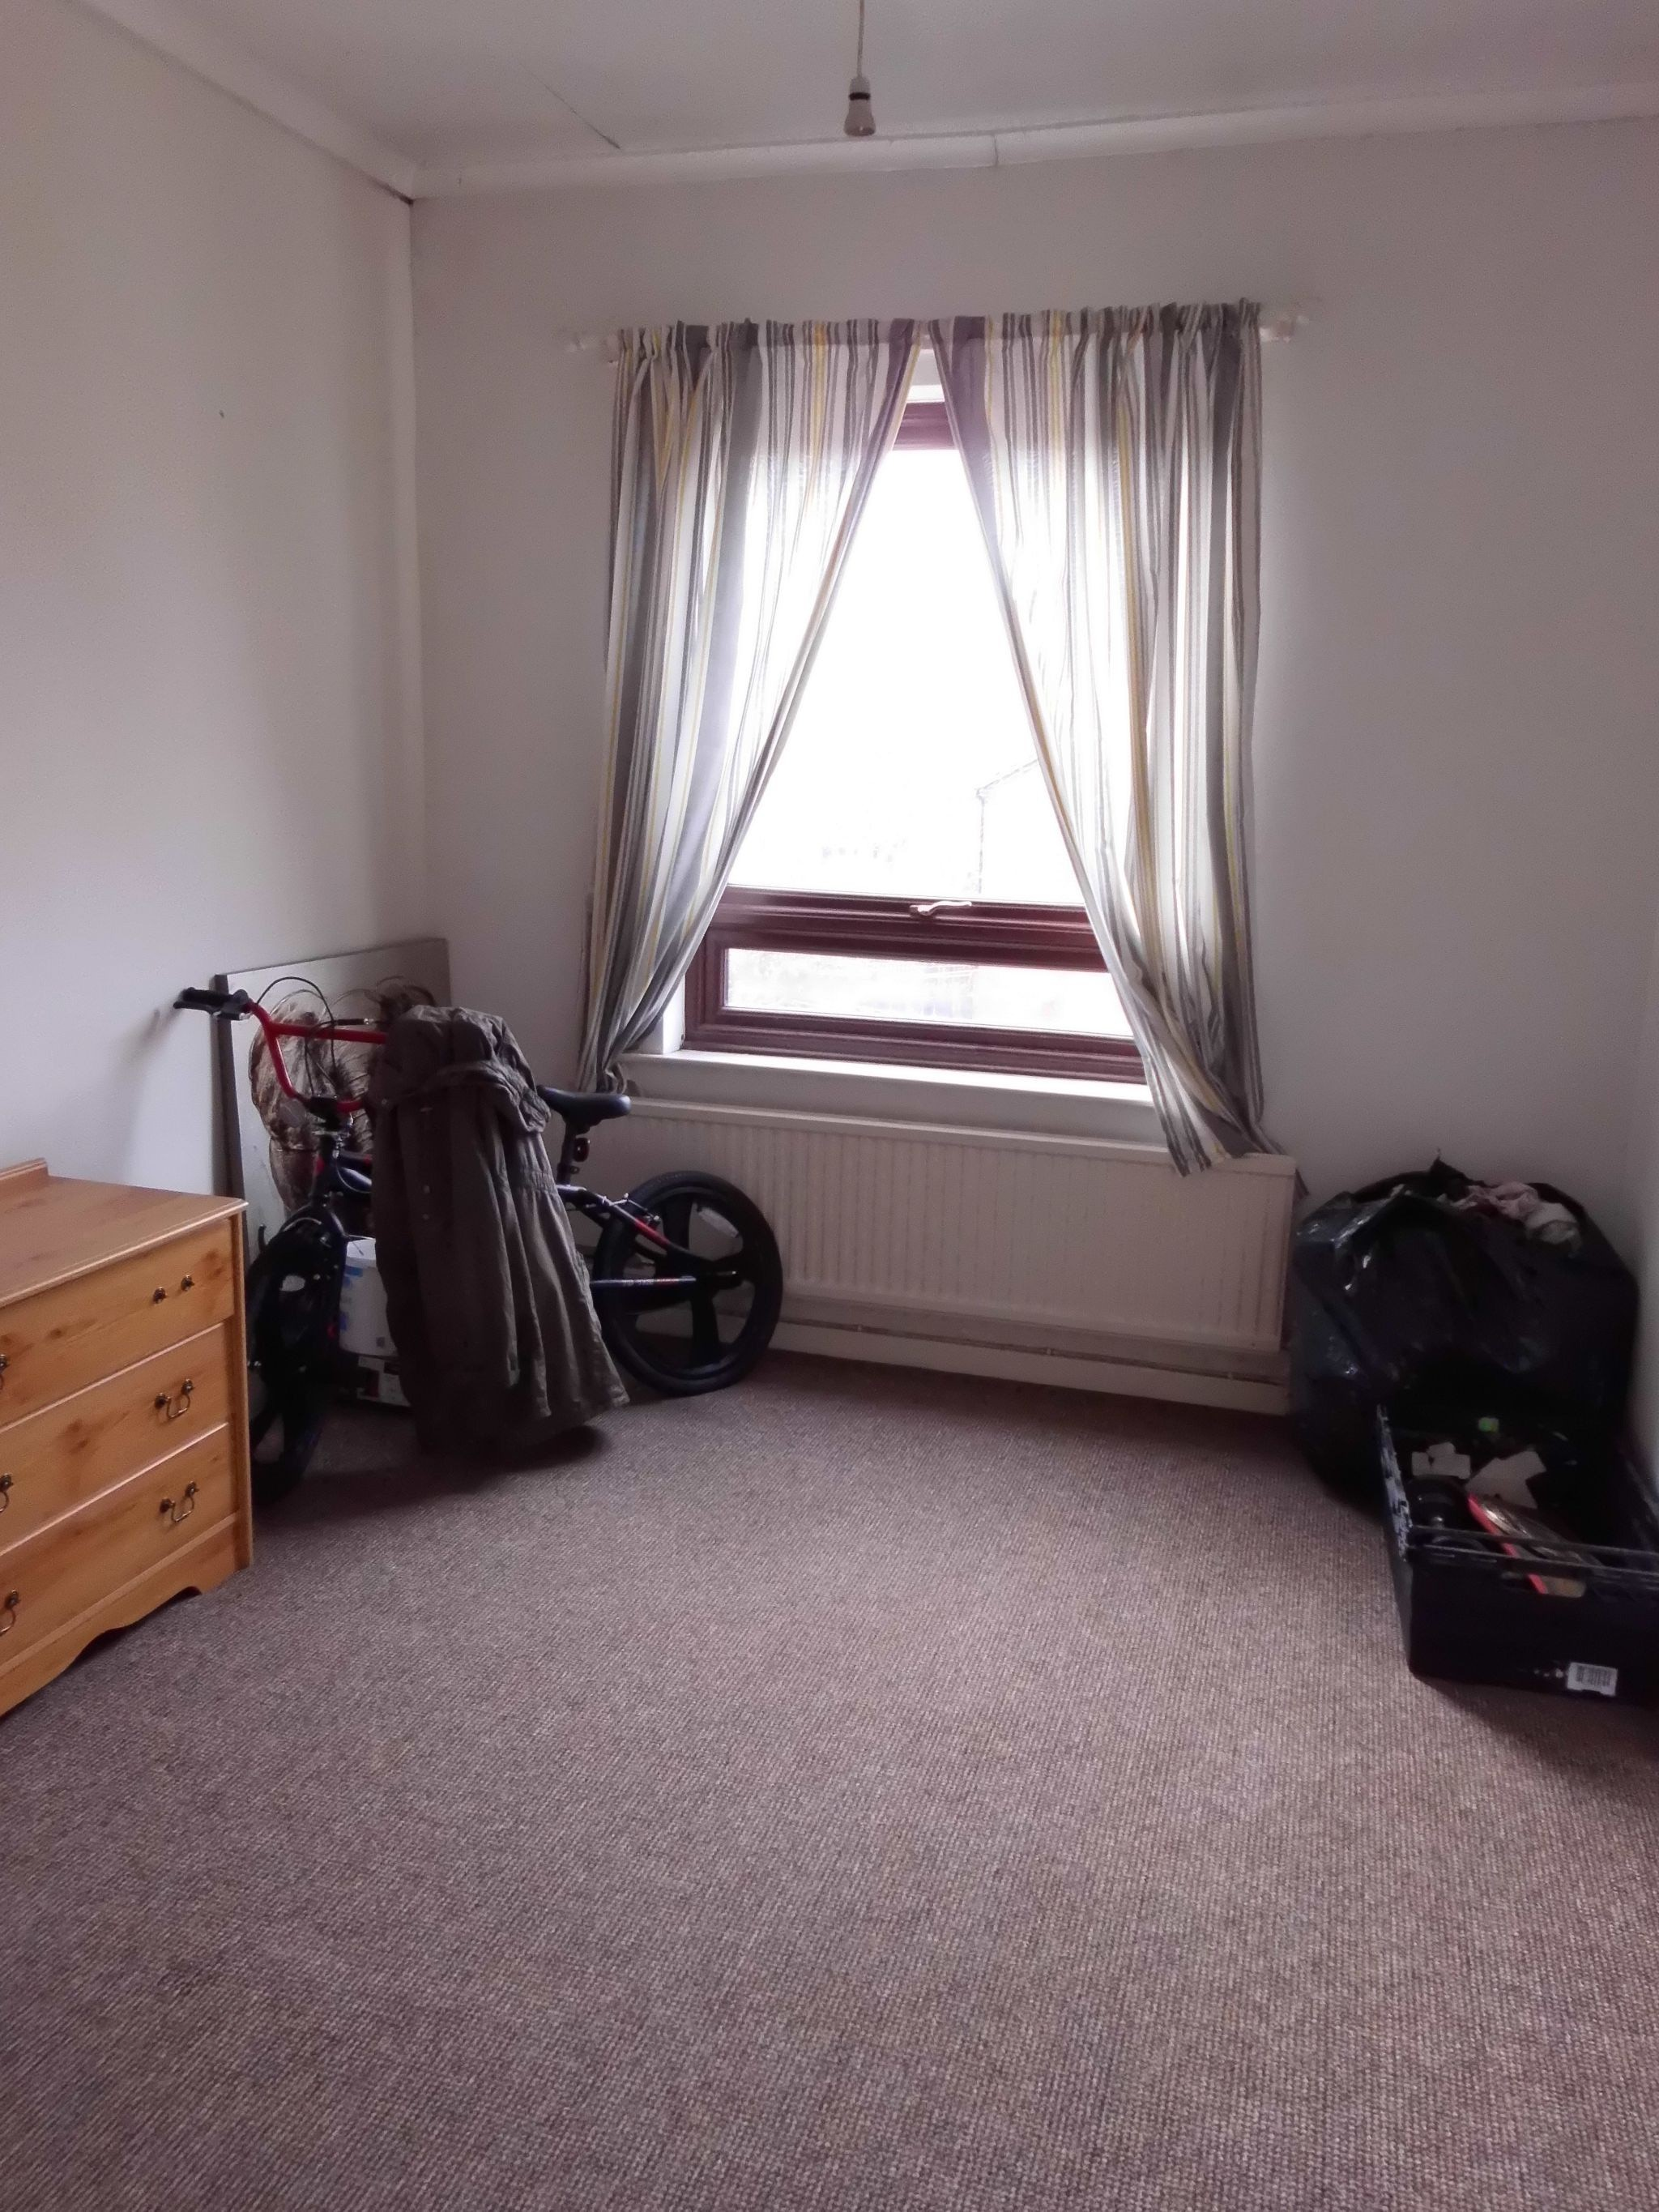 3 bedroom town house For Sale in Leicester - Photograph 10.